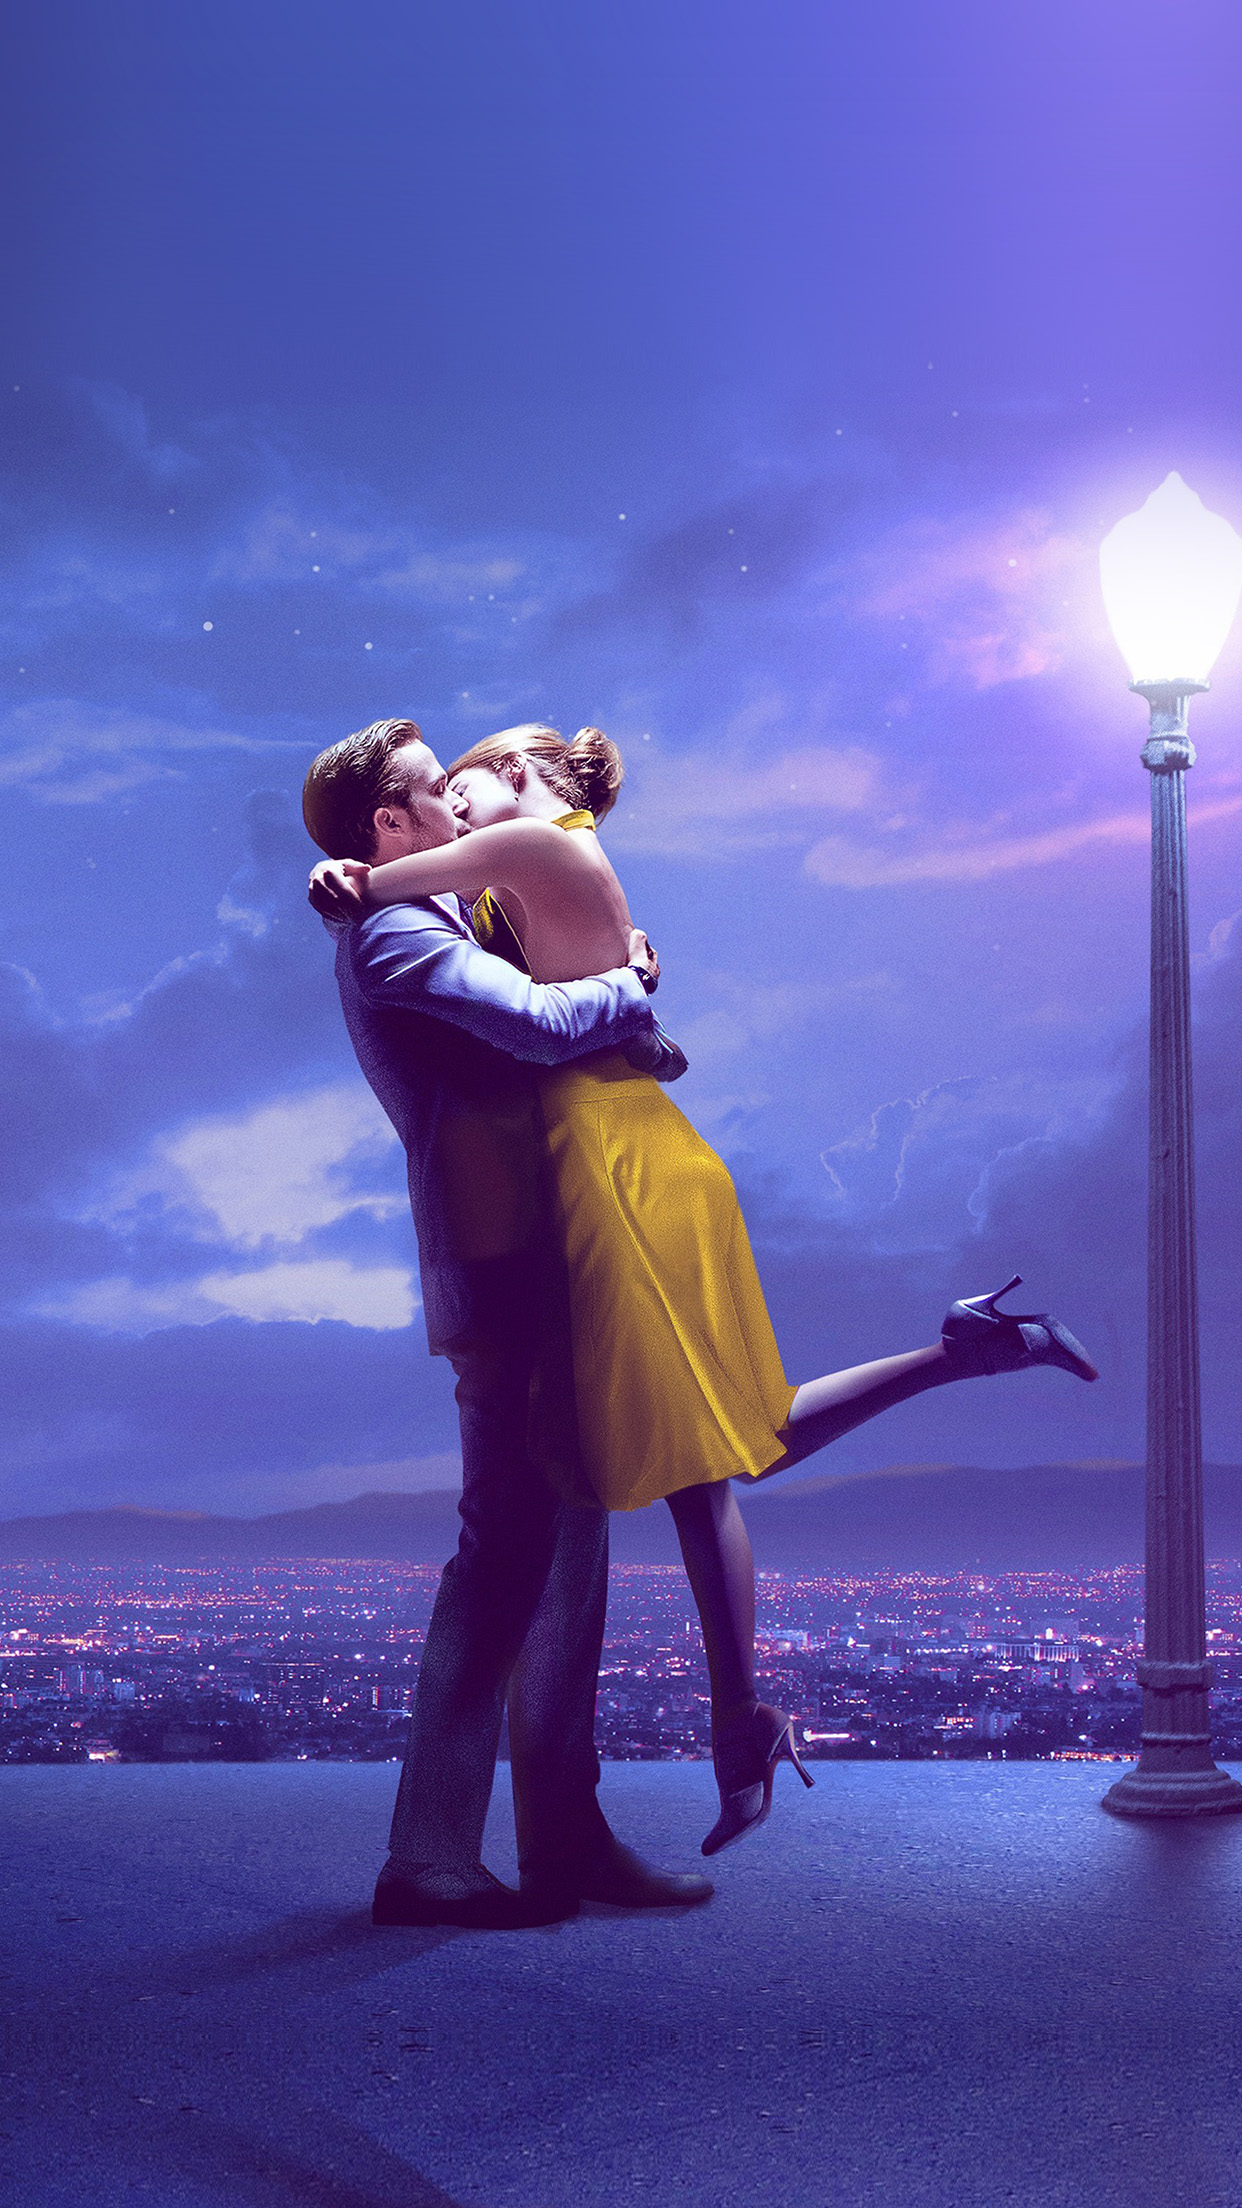 Iphone wallpaper aw38 lalaland film love - Classic art wallpaper iphone 5 ...